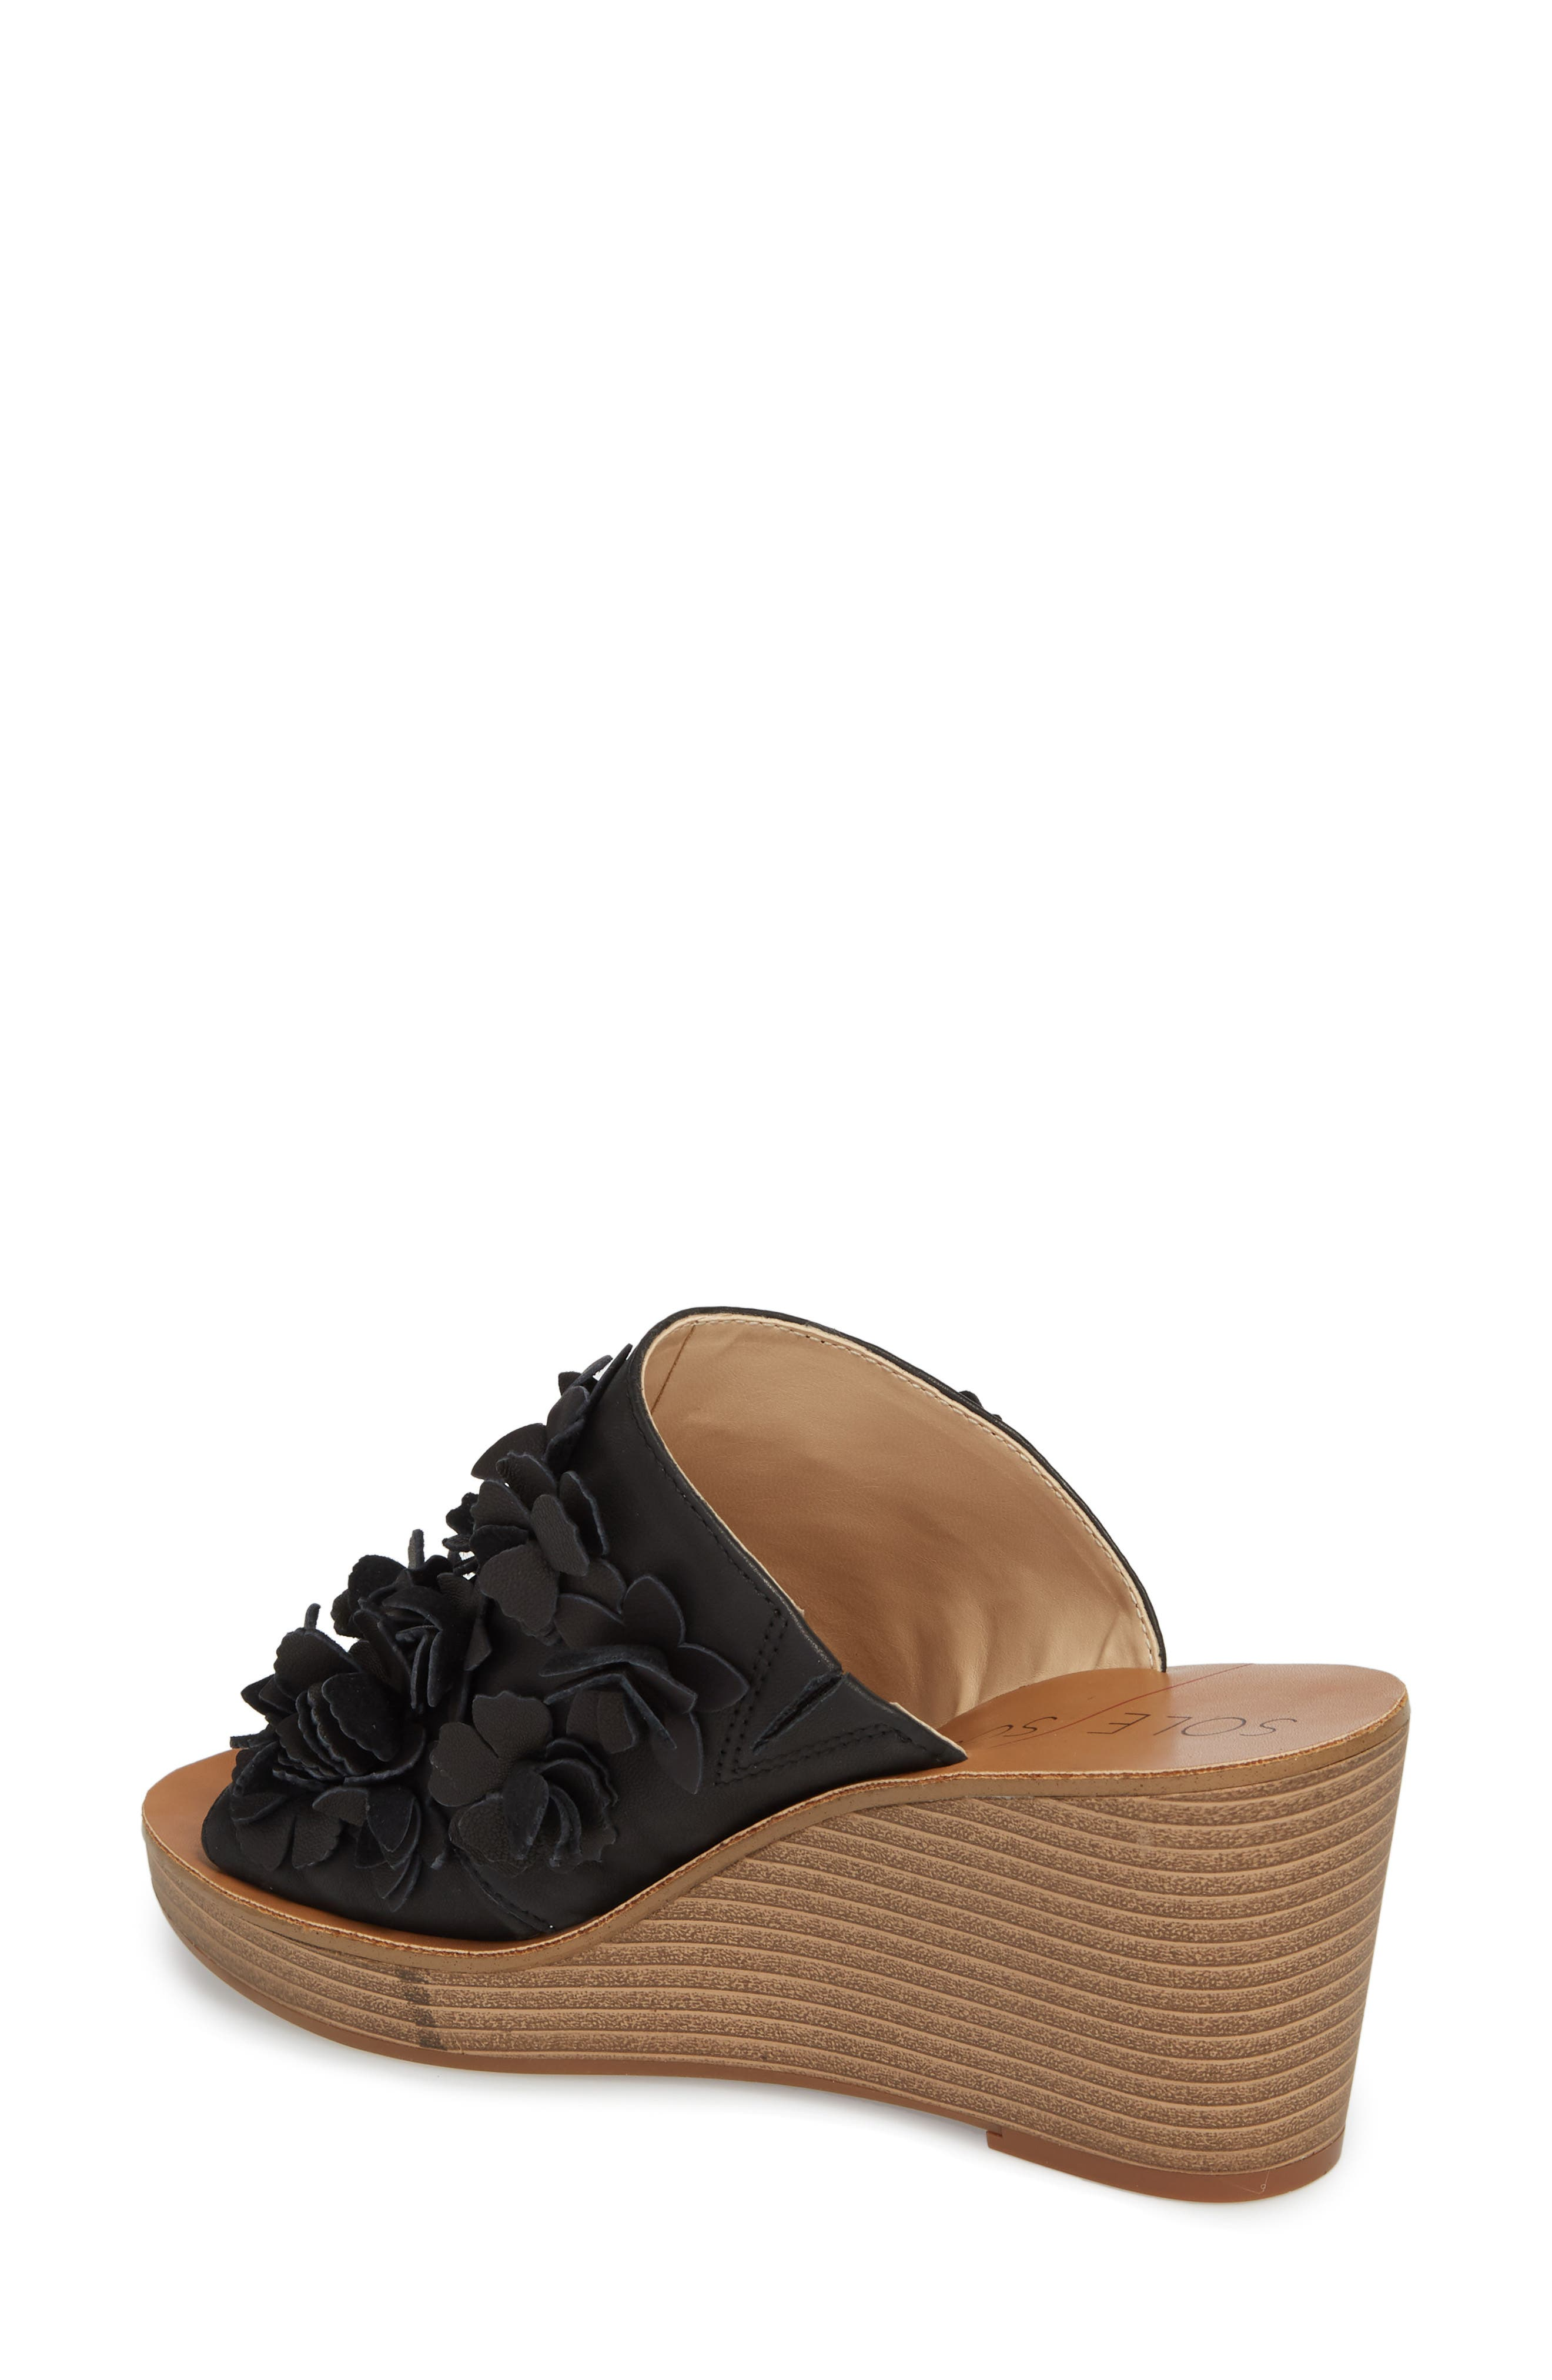 Poppie Wedge Sandal,                             Alternate thumbnail 2, color,                             BLACK